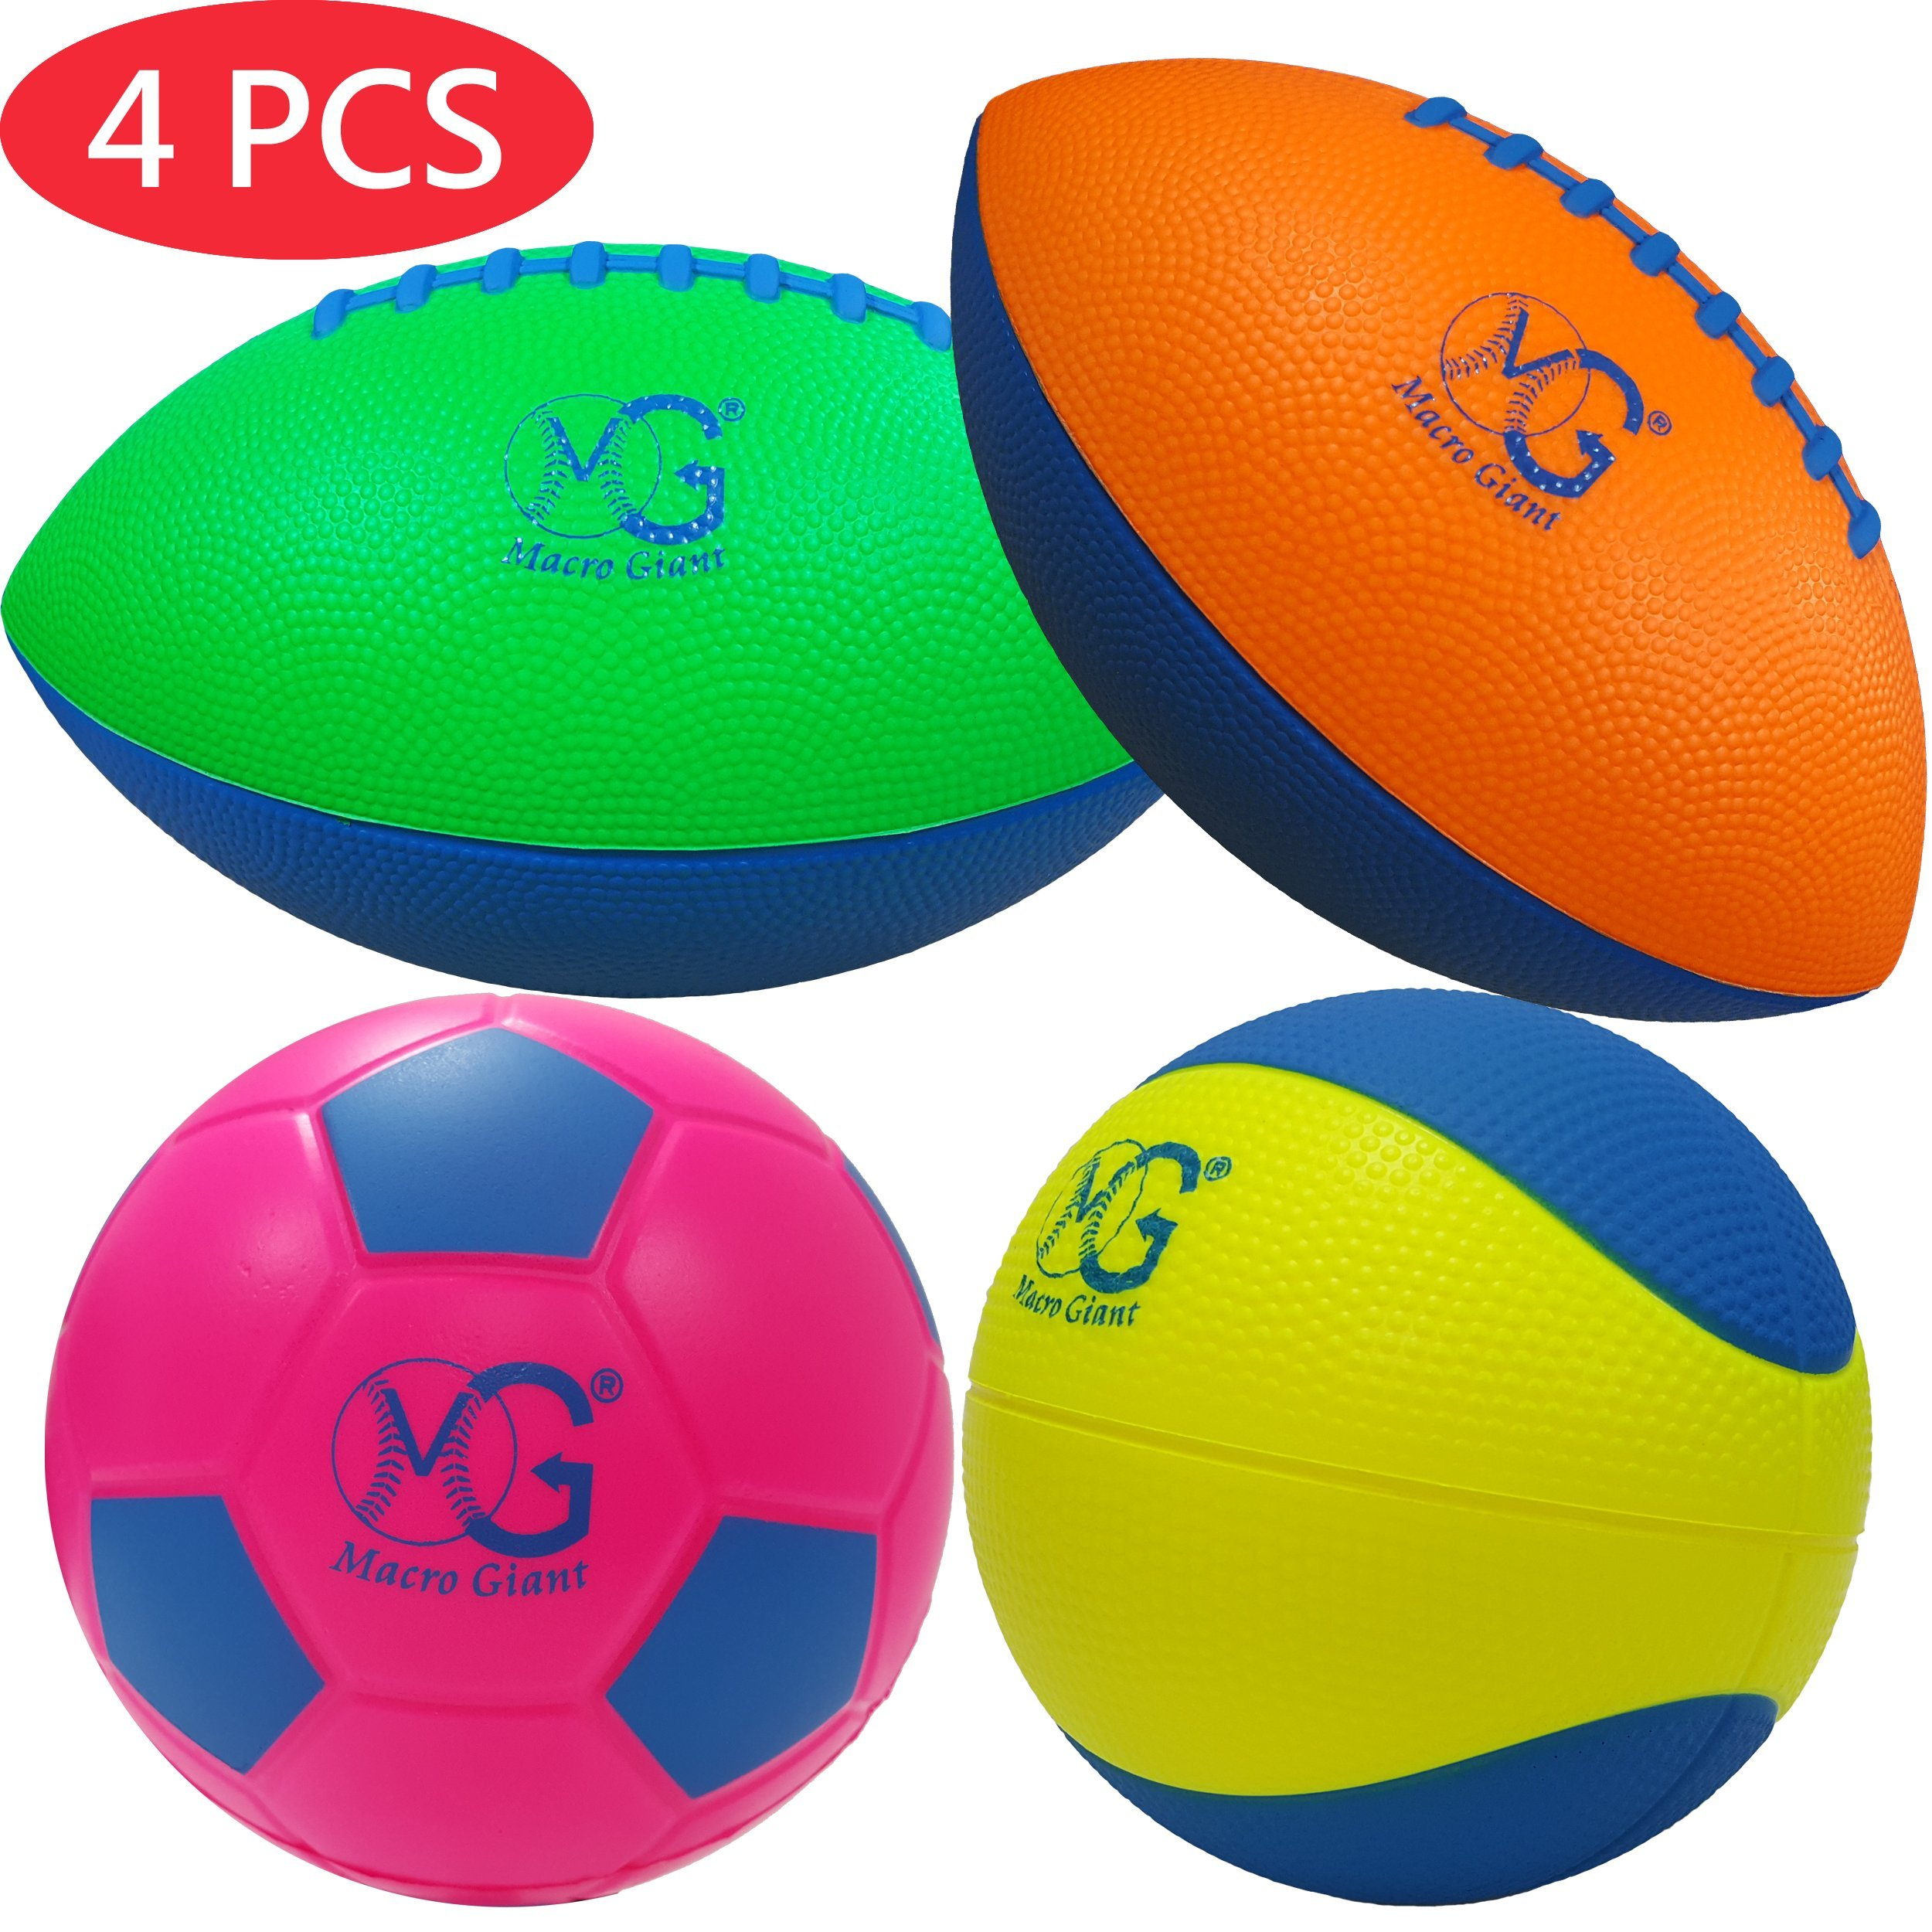 Macro Giant Foam Soft Colorful Sport Pack Set of 4, Mini 9 Inch Football x2, 6 Inch Soccer Ball x1, 6 Inch Basketball x1, Training Practice, School Playground, Kids Toy Gift, Birthday Gift by Macro Giant